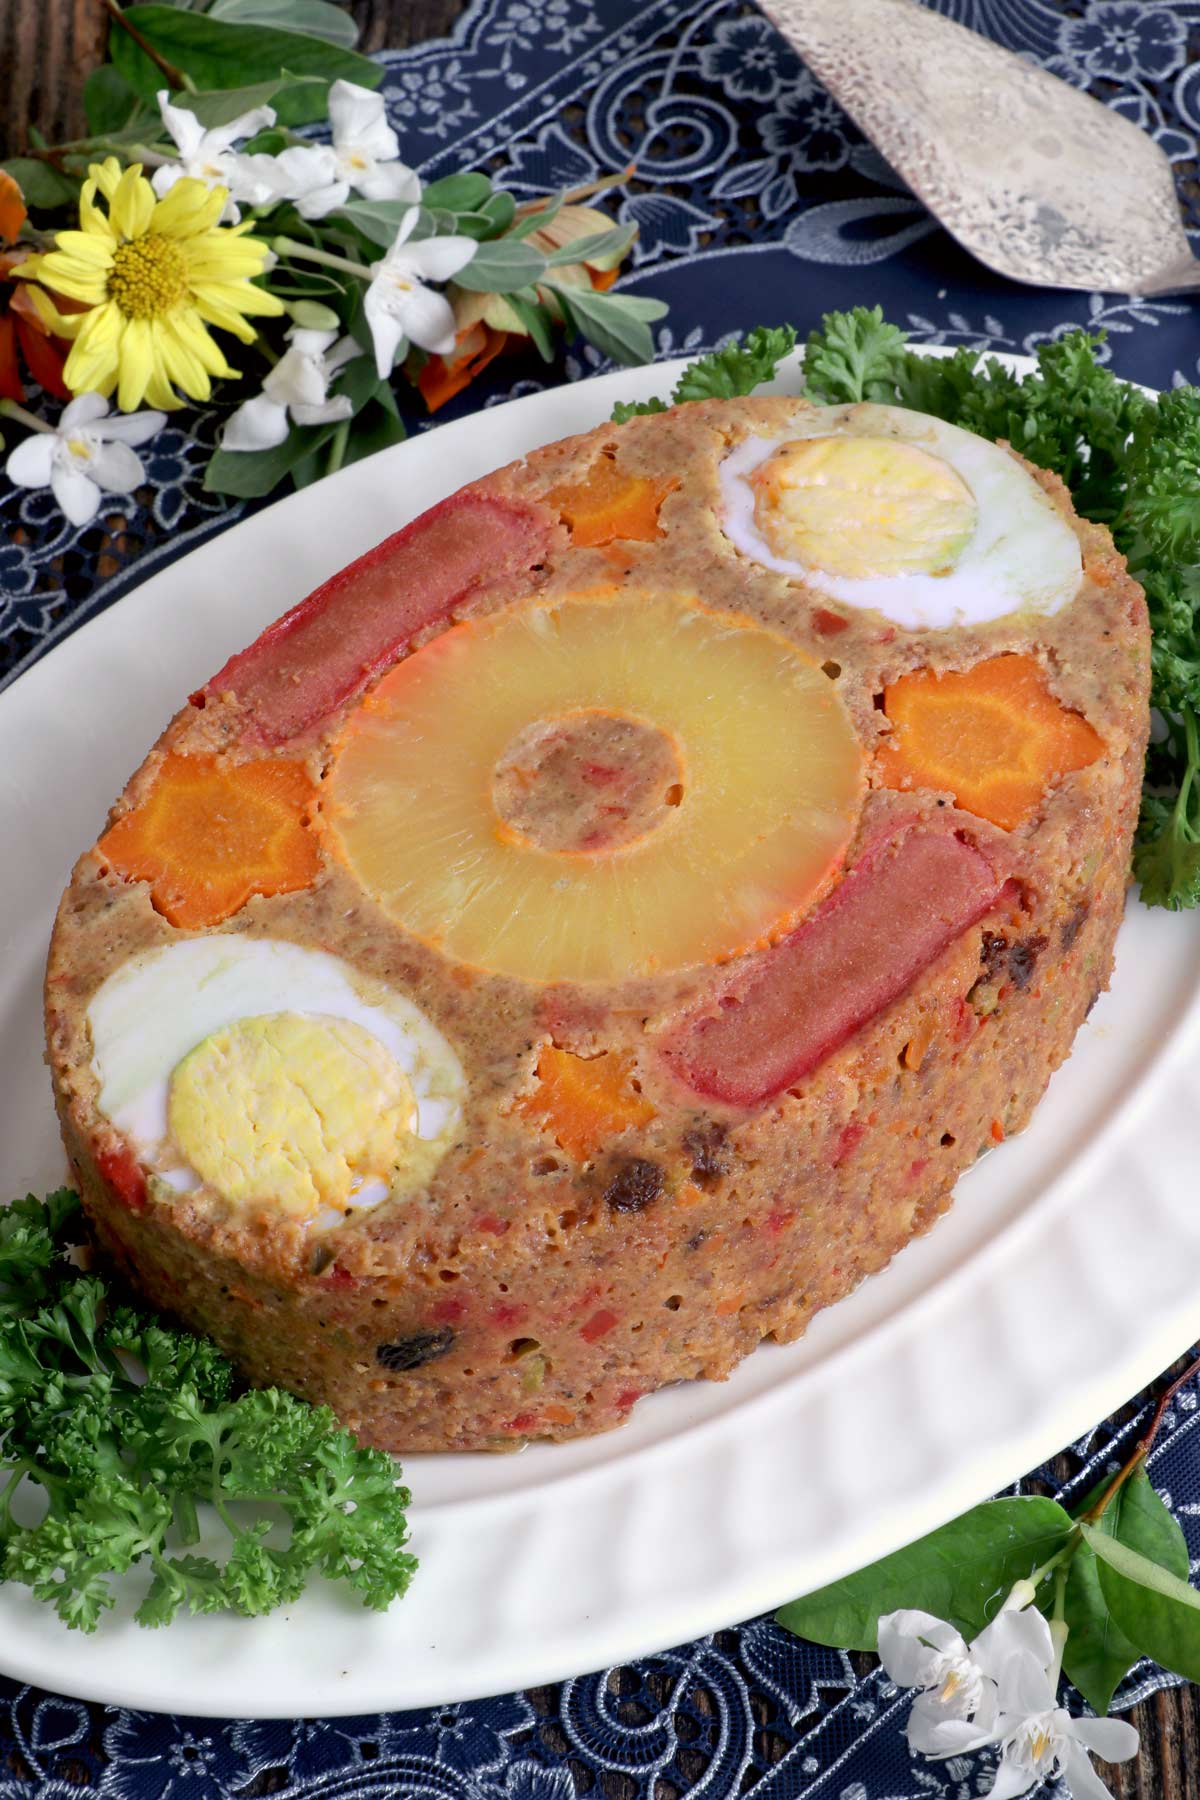 Everlasting - a meatloaf with boiled eggs, pineapple, sausage, carrots.